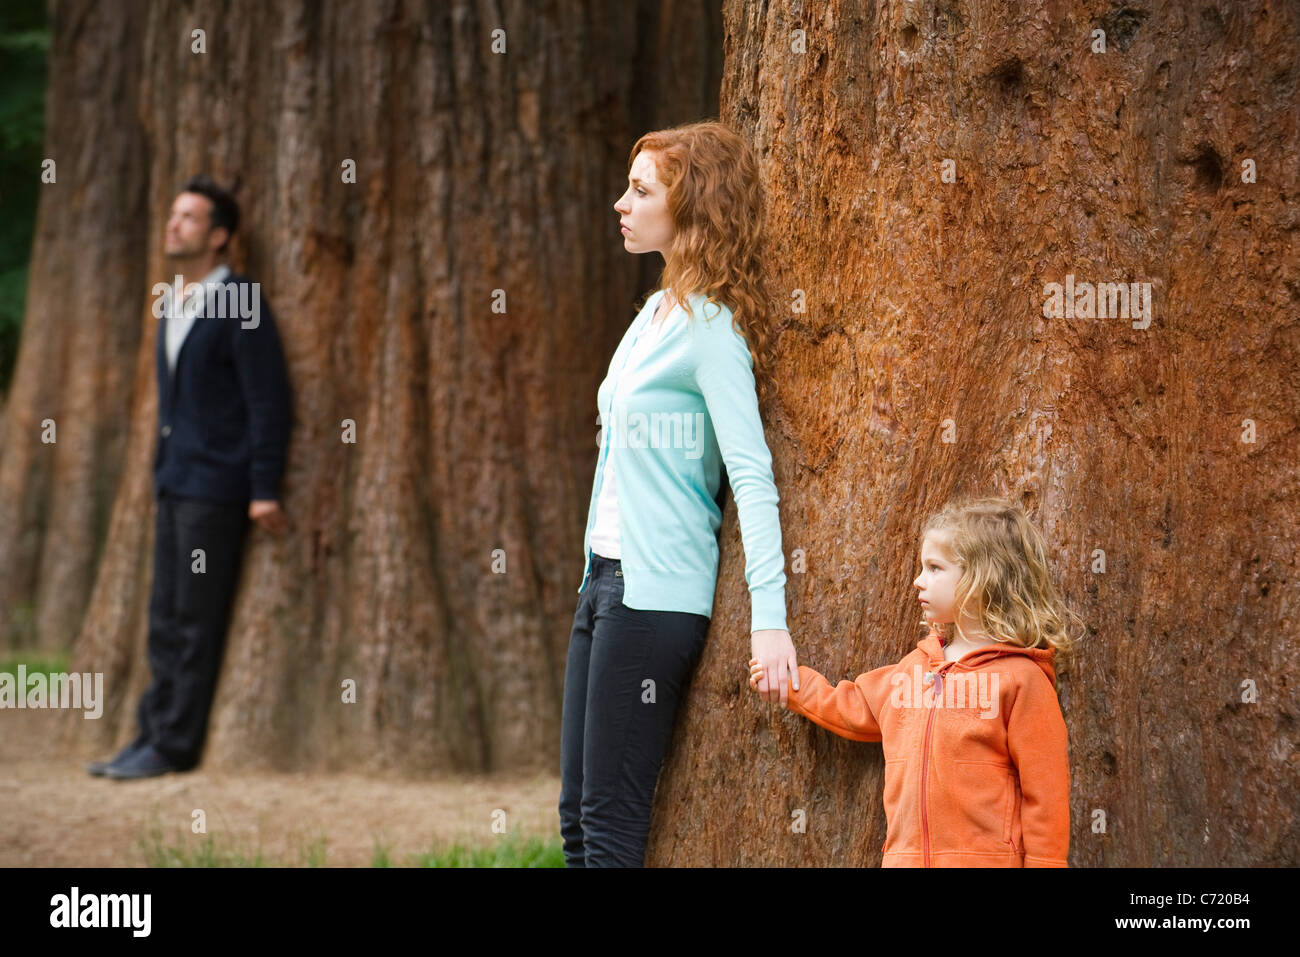 Mother and daughter leaning against tree, father standing separate in background Stock Photo